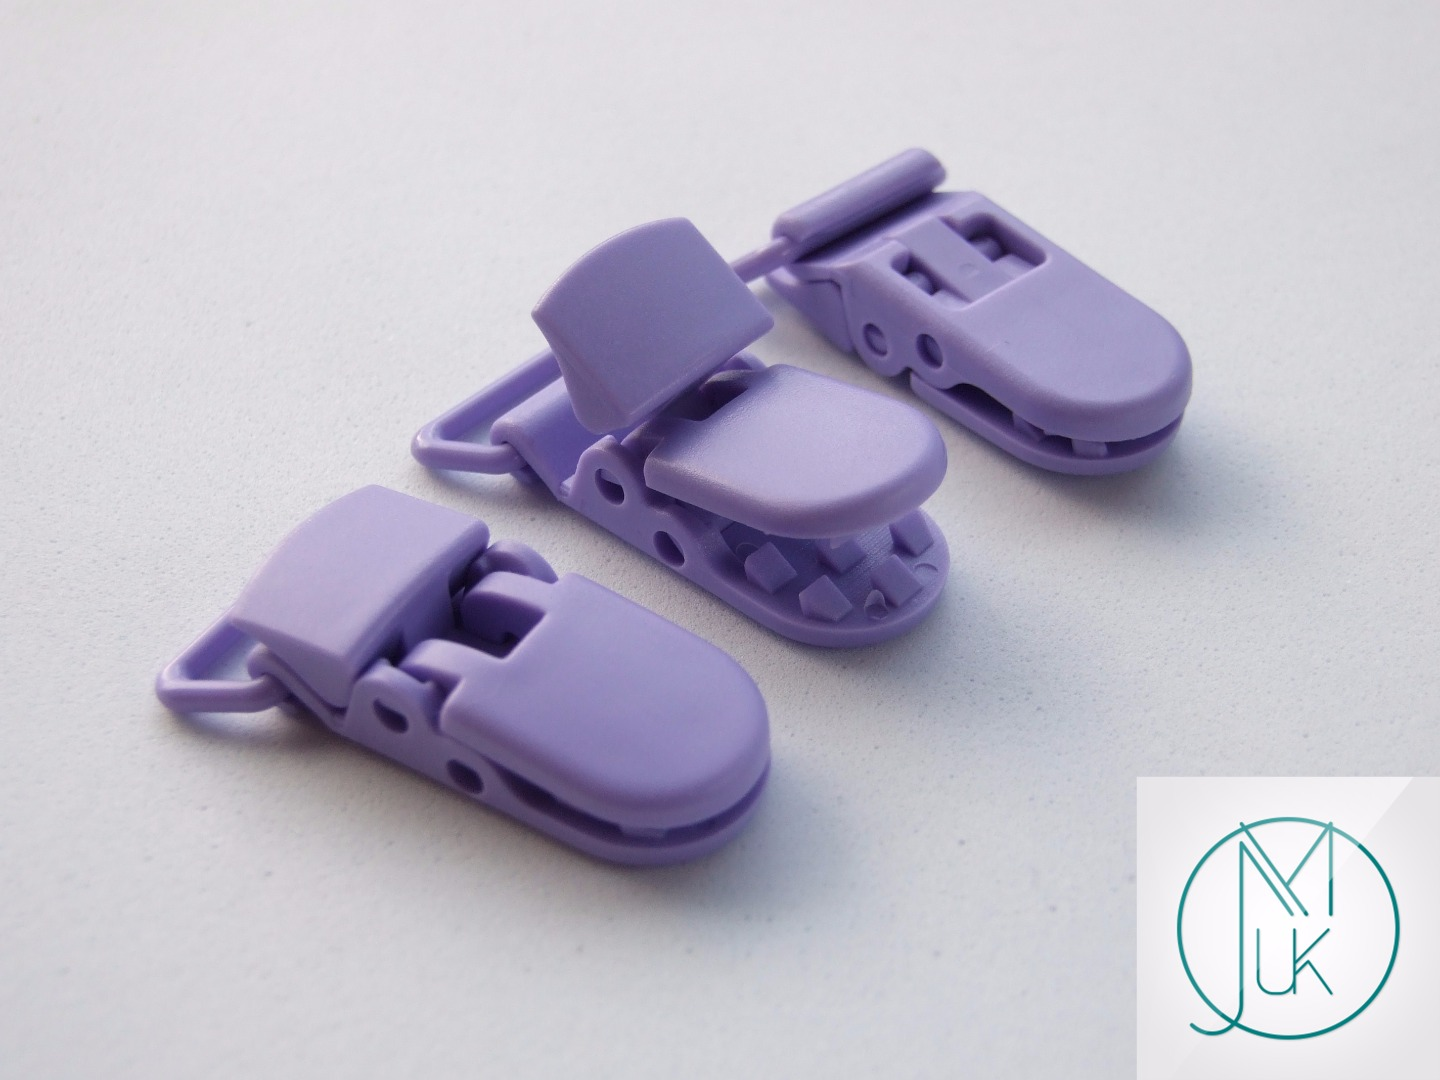 Plastic Pacifier Holder Clip for Teething Jewellery Making 10 Colors to Choose